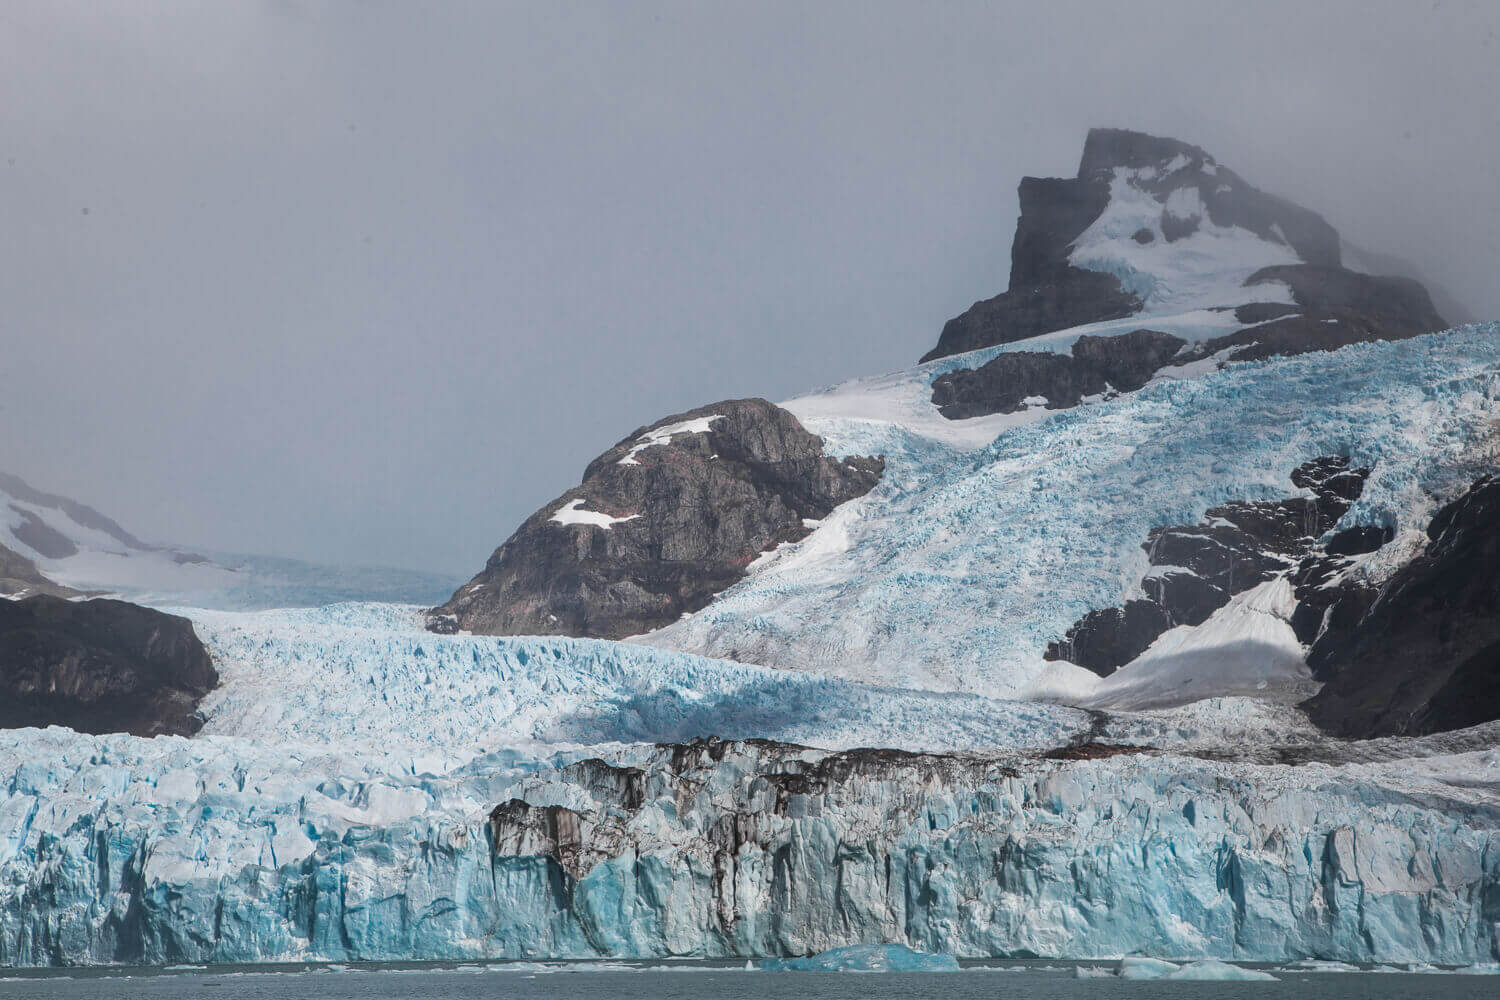 A grey mountain is blanketed in a turquoise blue glacier that climbs down from the peak to meet the water below.